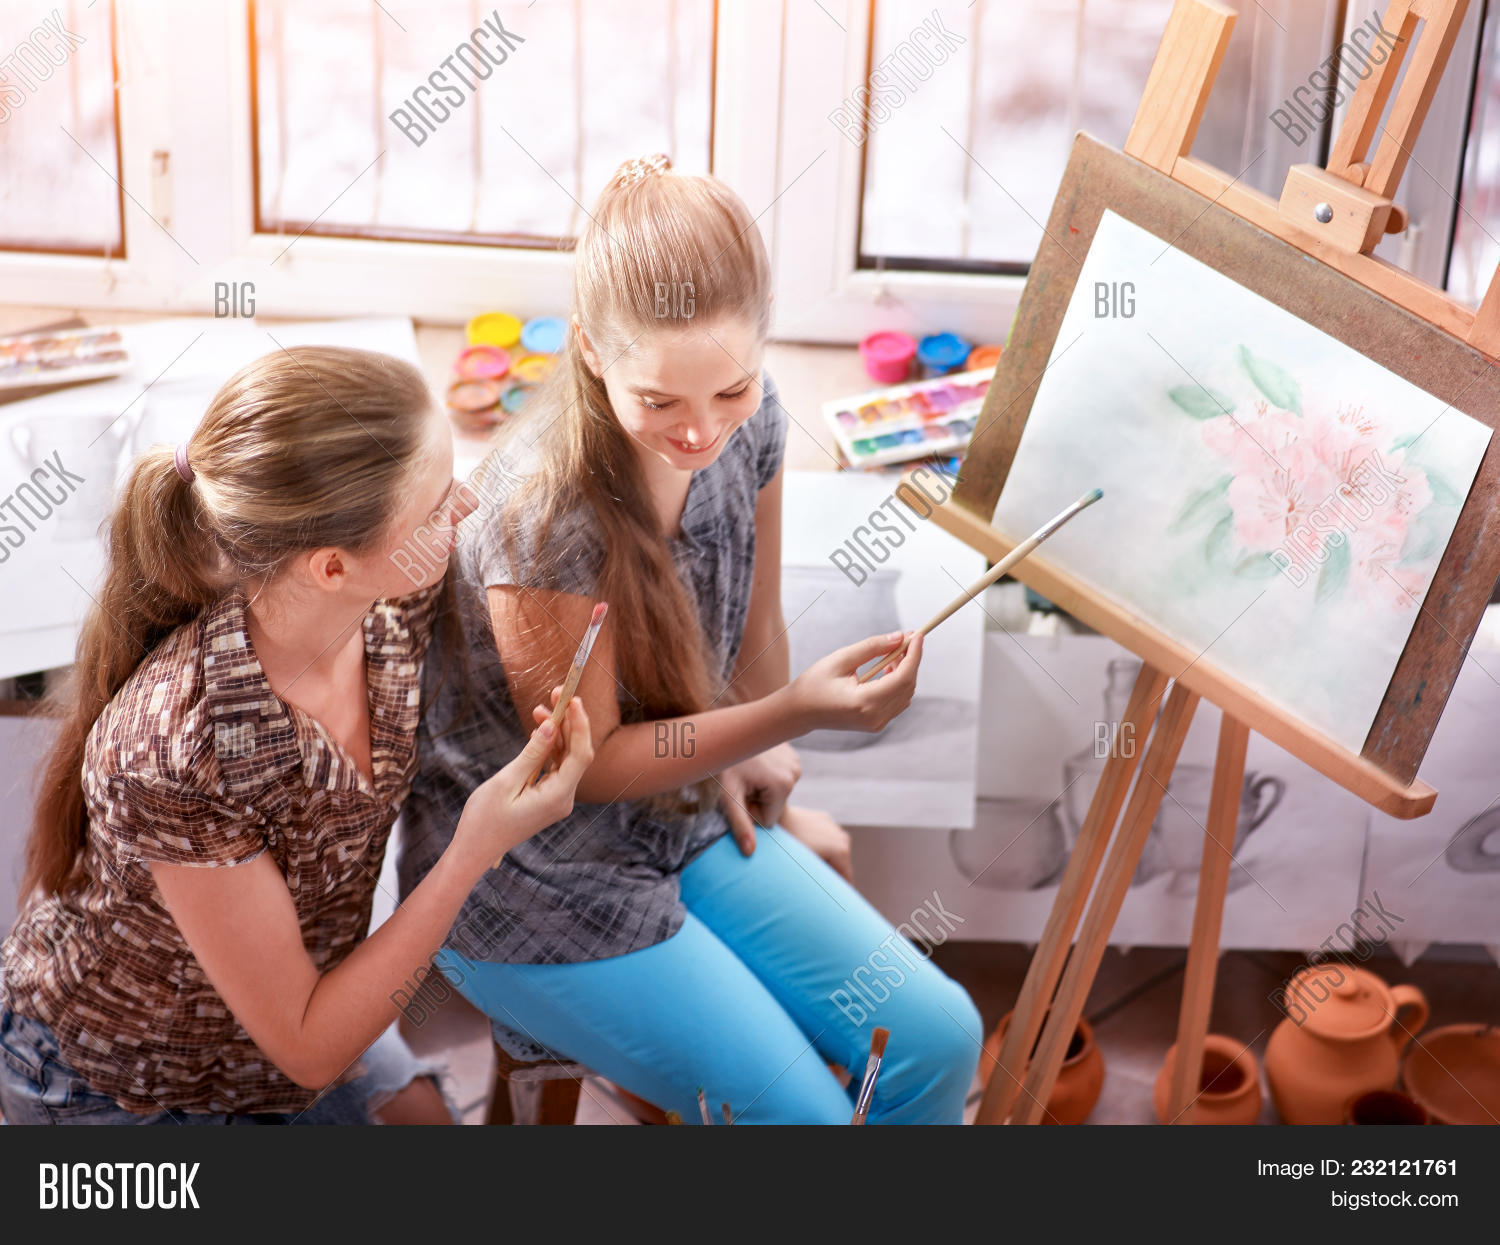 artist painting easel image photo free trial bigstock